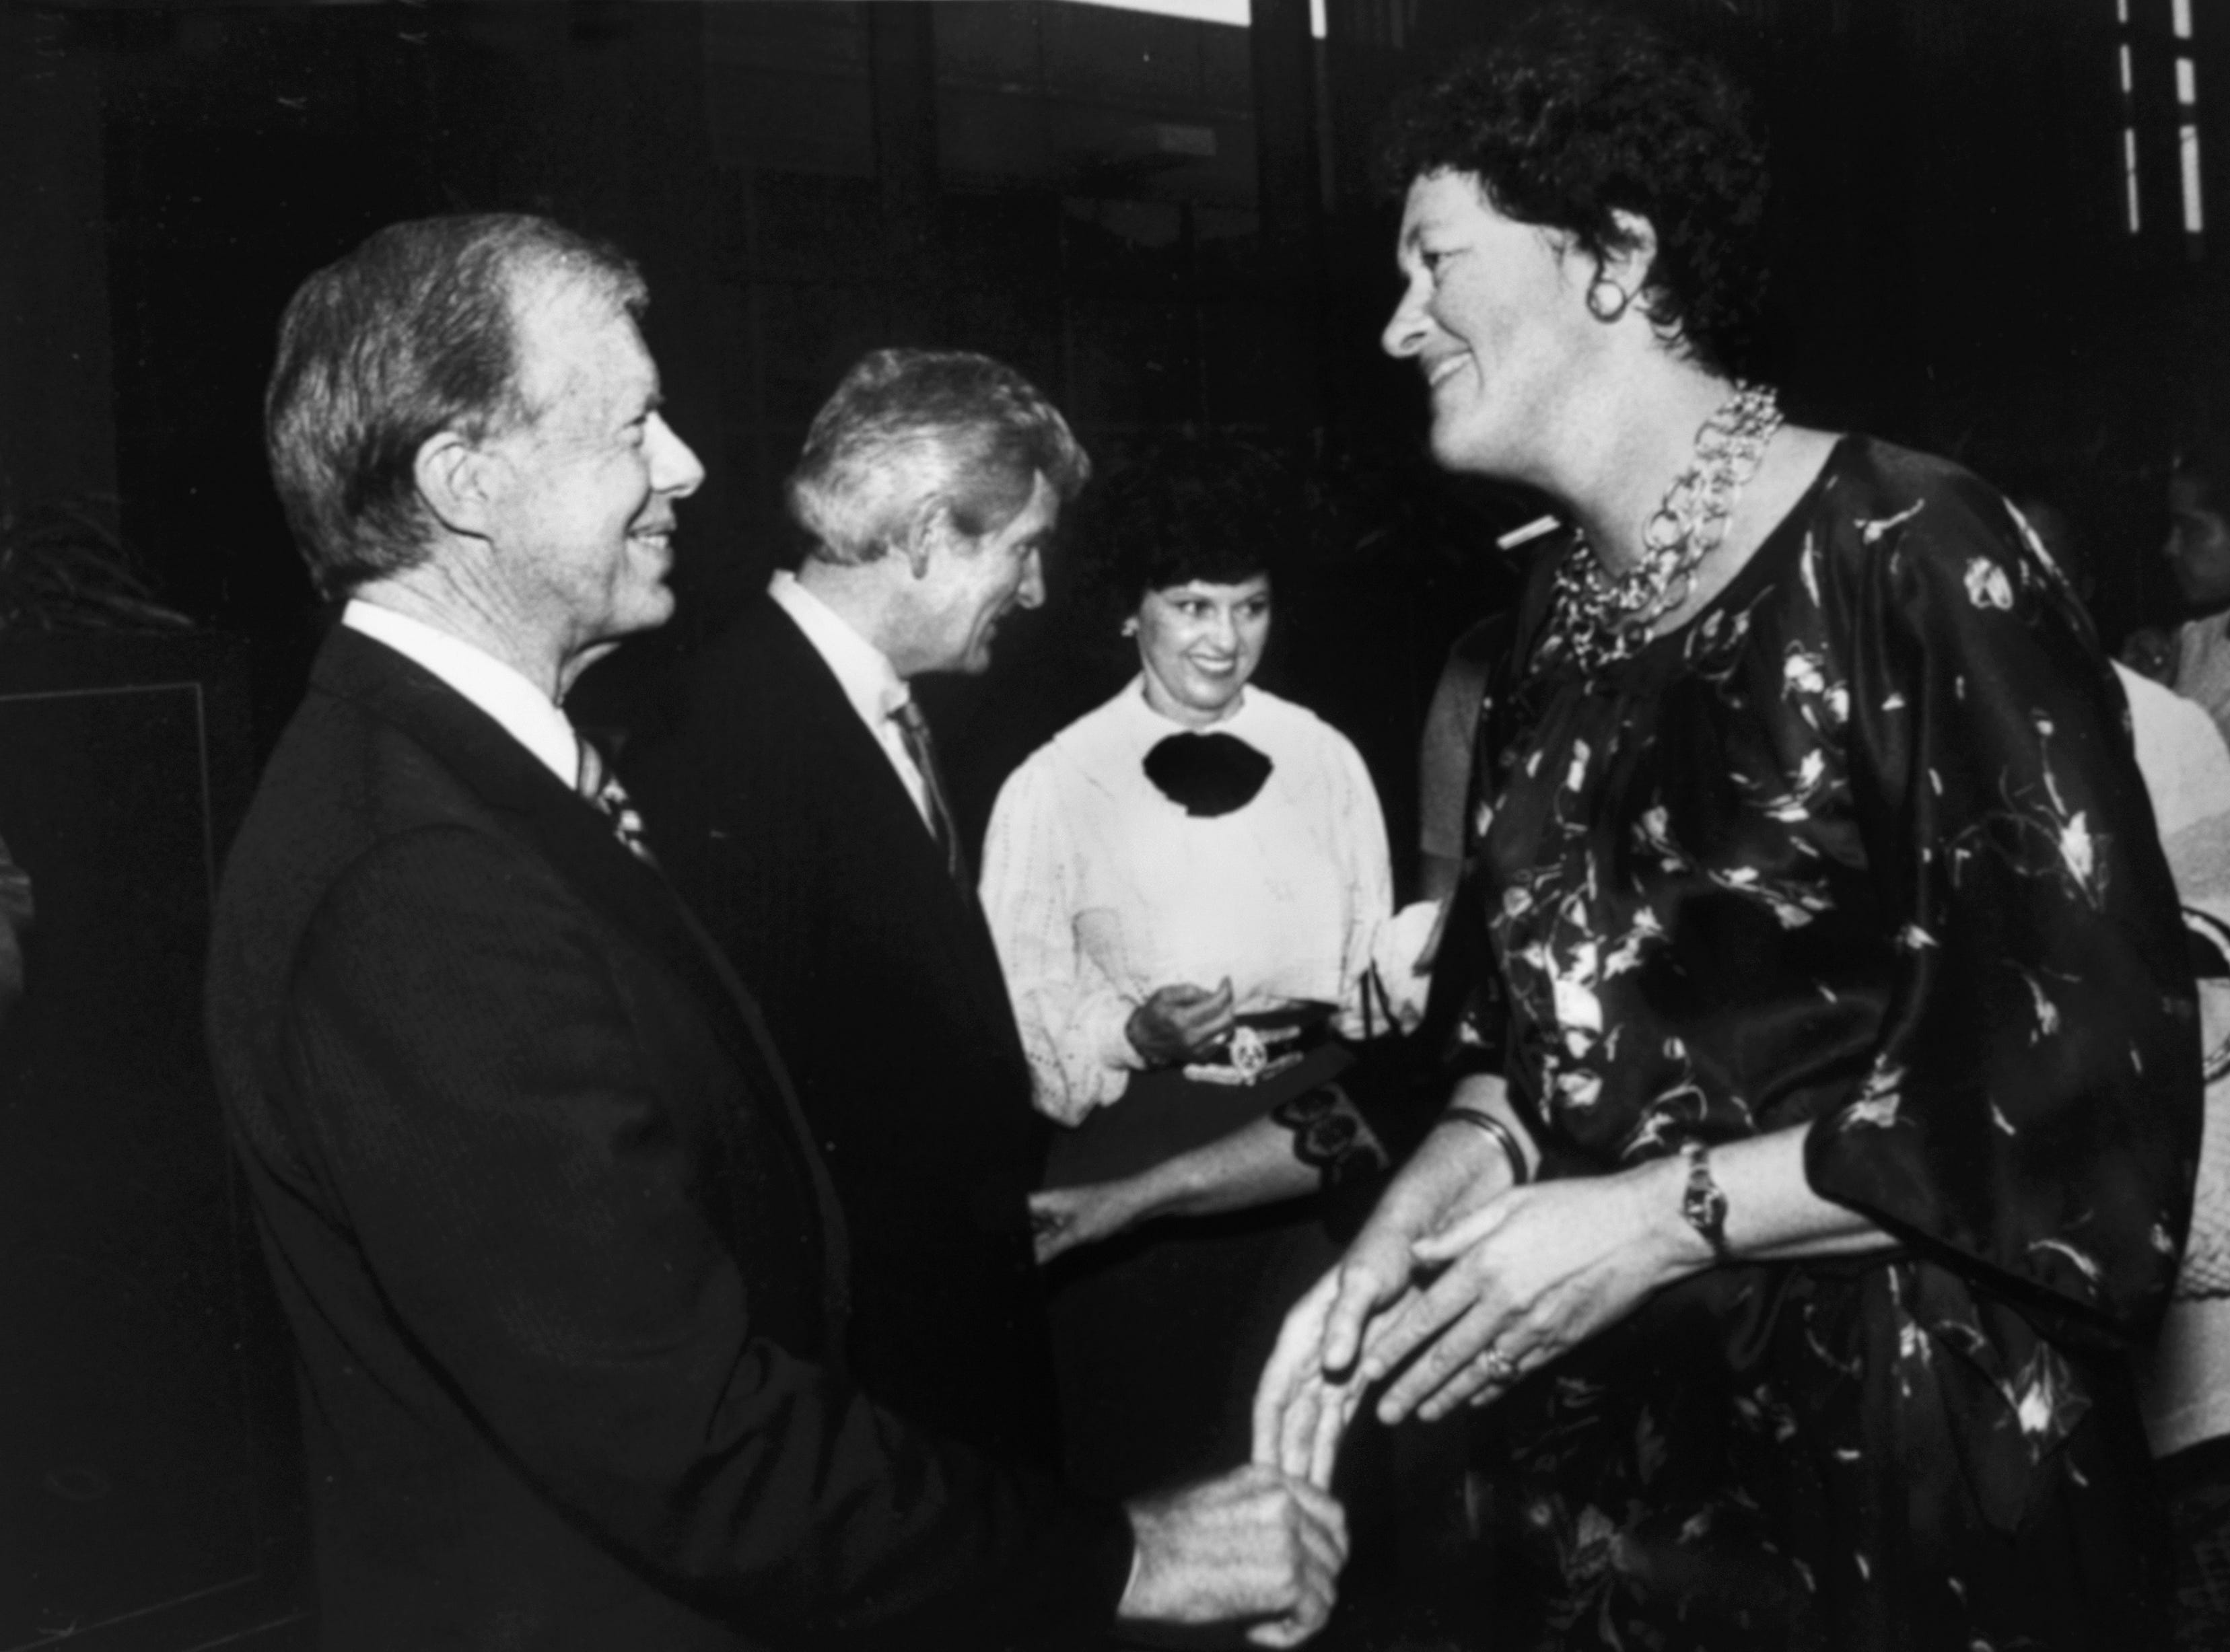 Former President Jimmy Carter meets Louisa Kennedy during a reception on Oct. 9, 1982, at United American Bank. Kennedy, whose husband, Mike Kennedy, was one of the 53 Iranian hostages, was in town for a Peace Day program at the World's Fair. In the background are bank President Jake Butcher and his wife, Sonya.